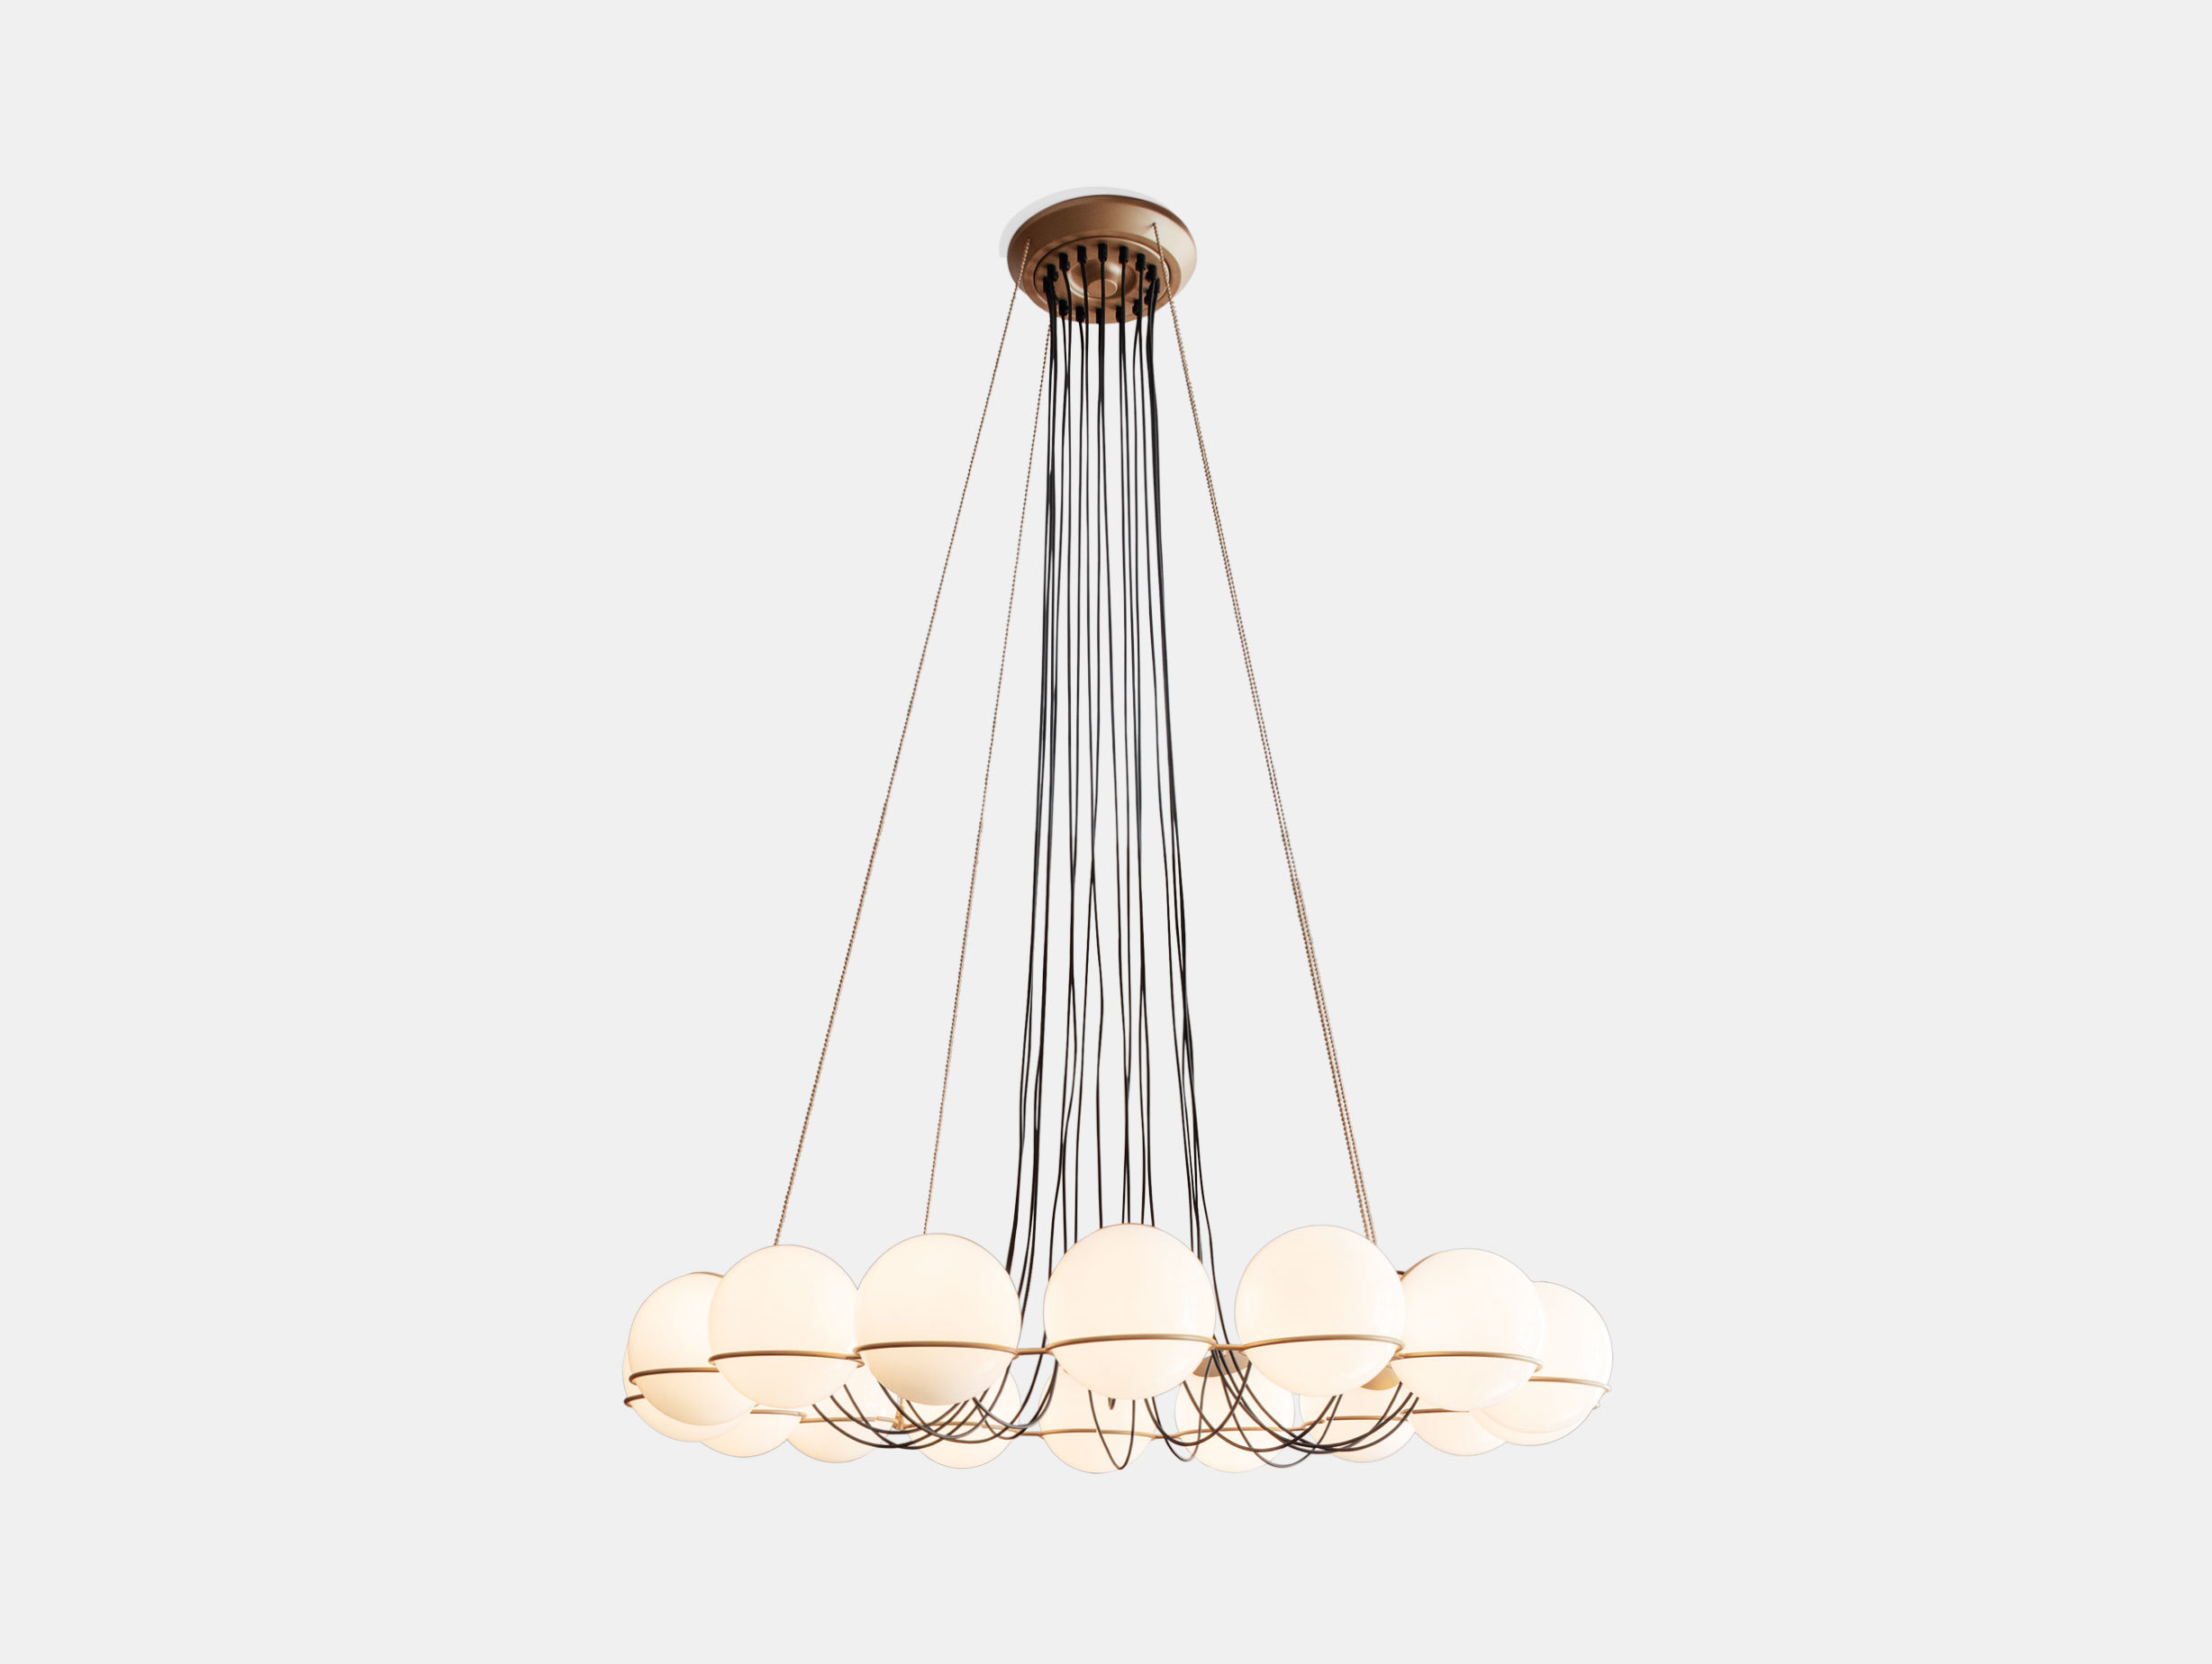 Le Sfere Model 2019 Suspension Light image 1